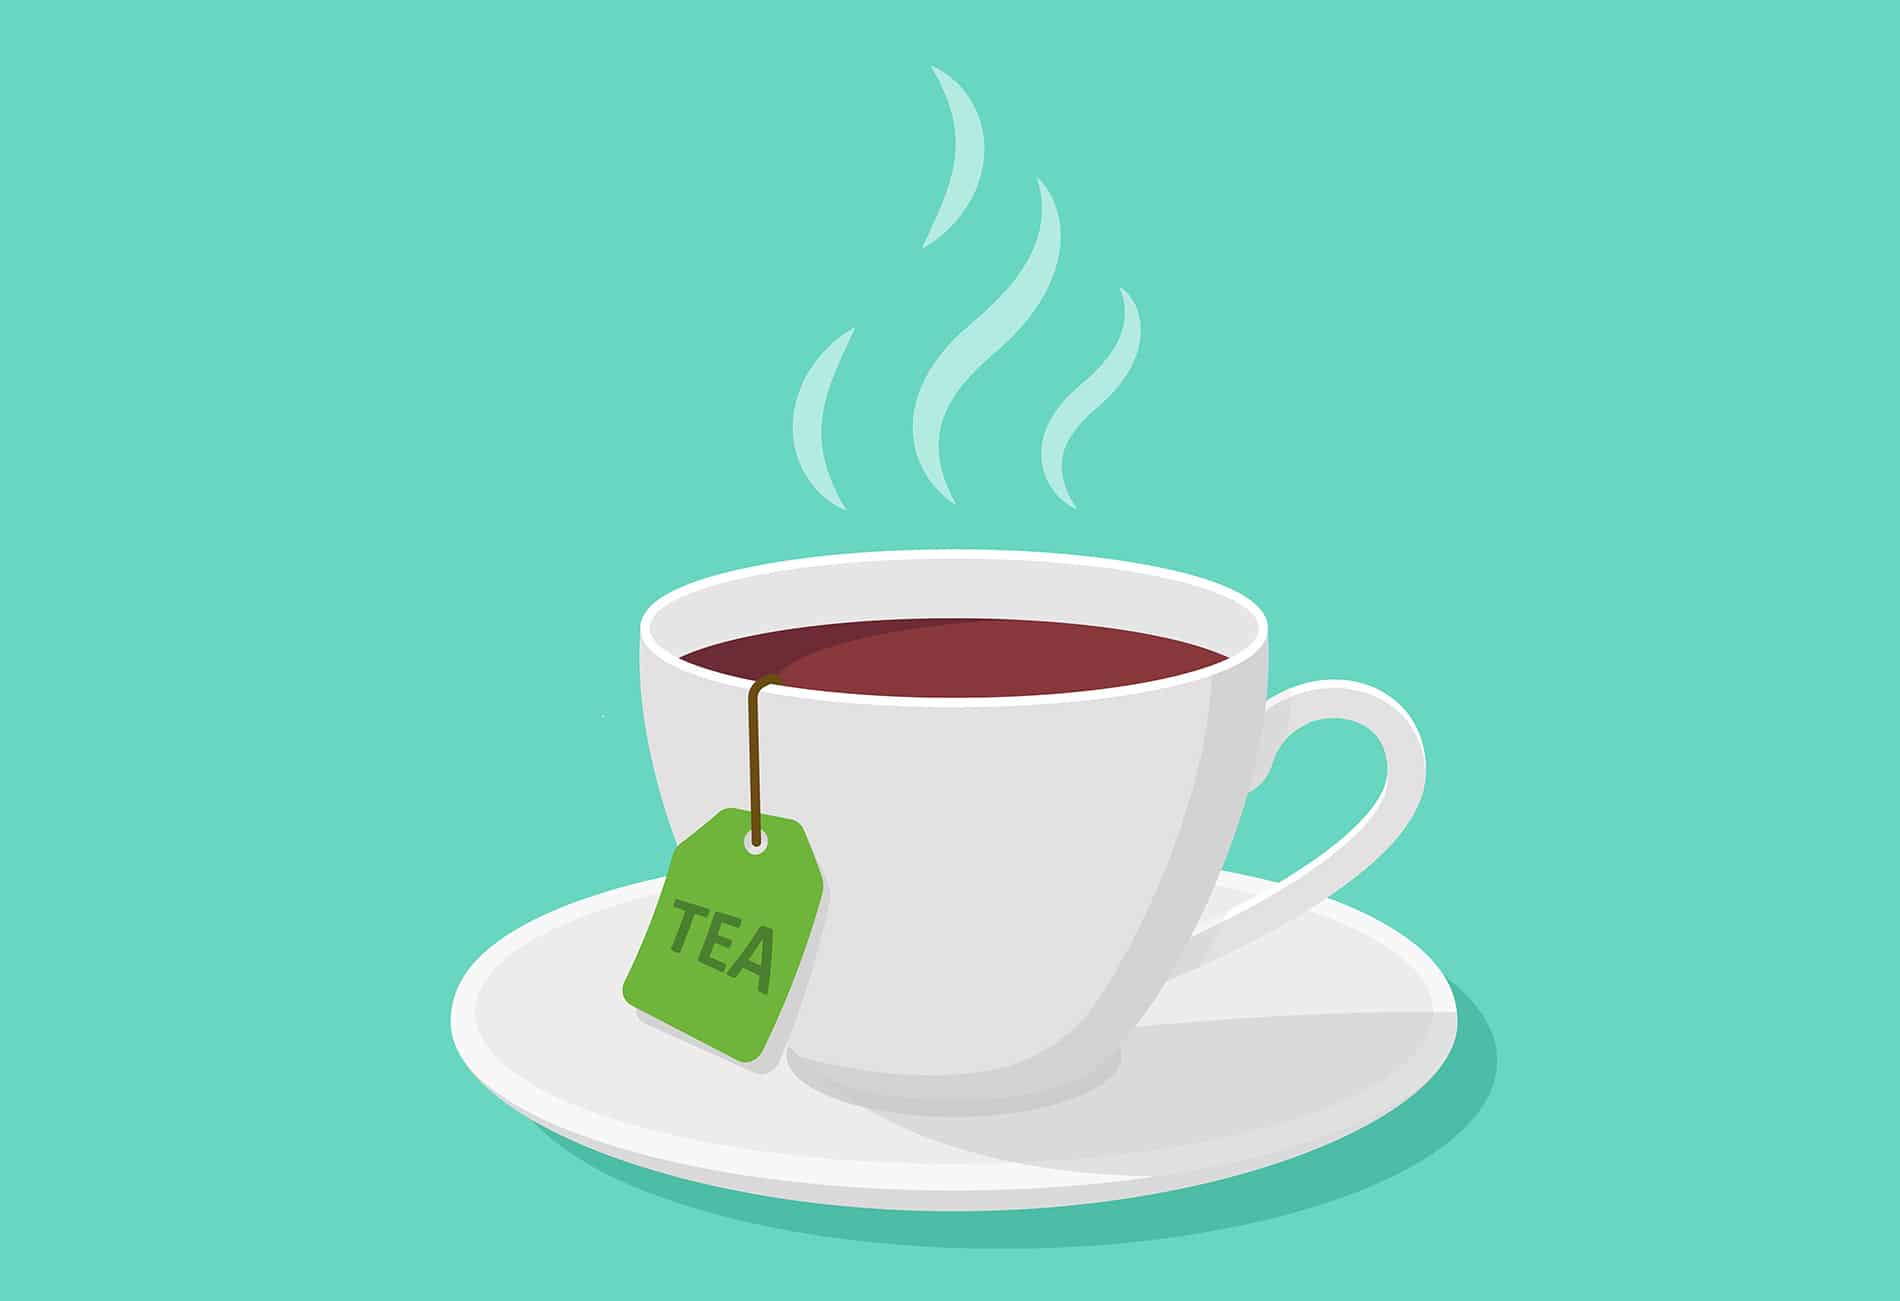 Best Teas to Lose Weight and Fat